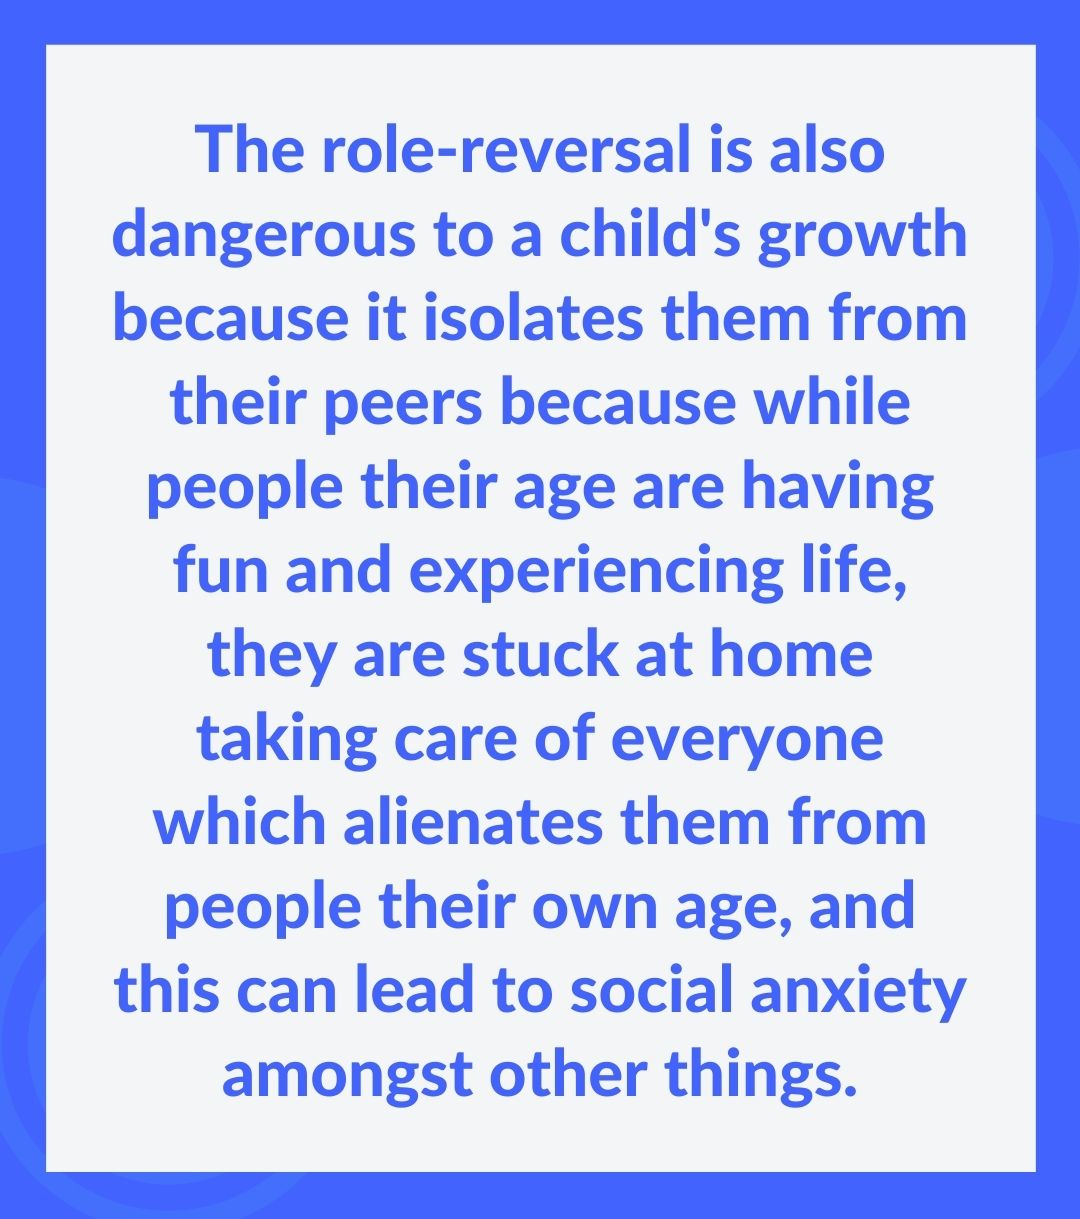 The role-reversal is also dangerous to a child's growth because it isolates them from their peers because while people their age are having fun and experiencing life, they are stuck at home taking care of everyone which alienates them from people their own age, and this can lead to social anxiety amongst other things.